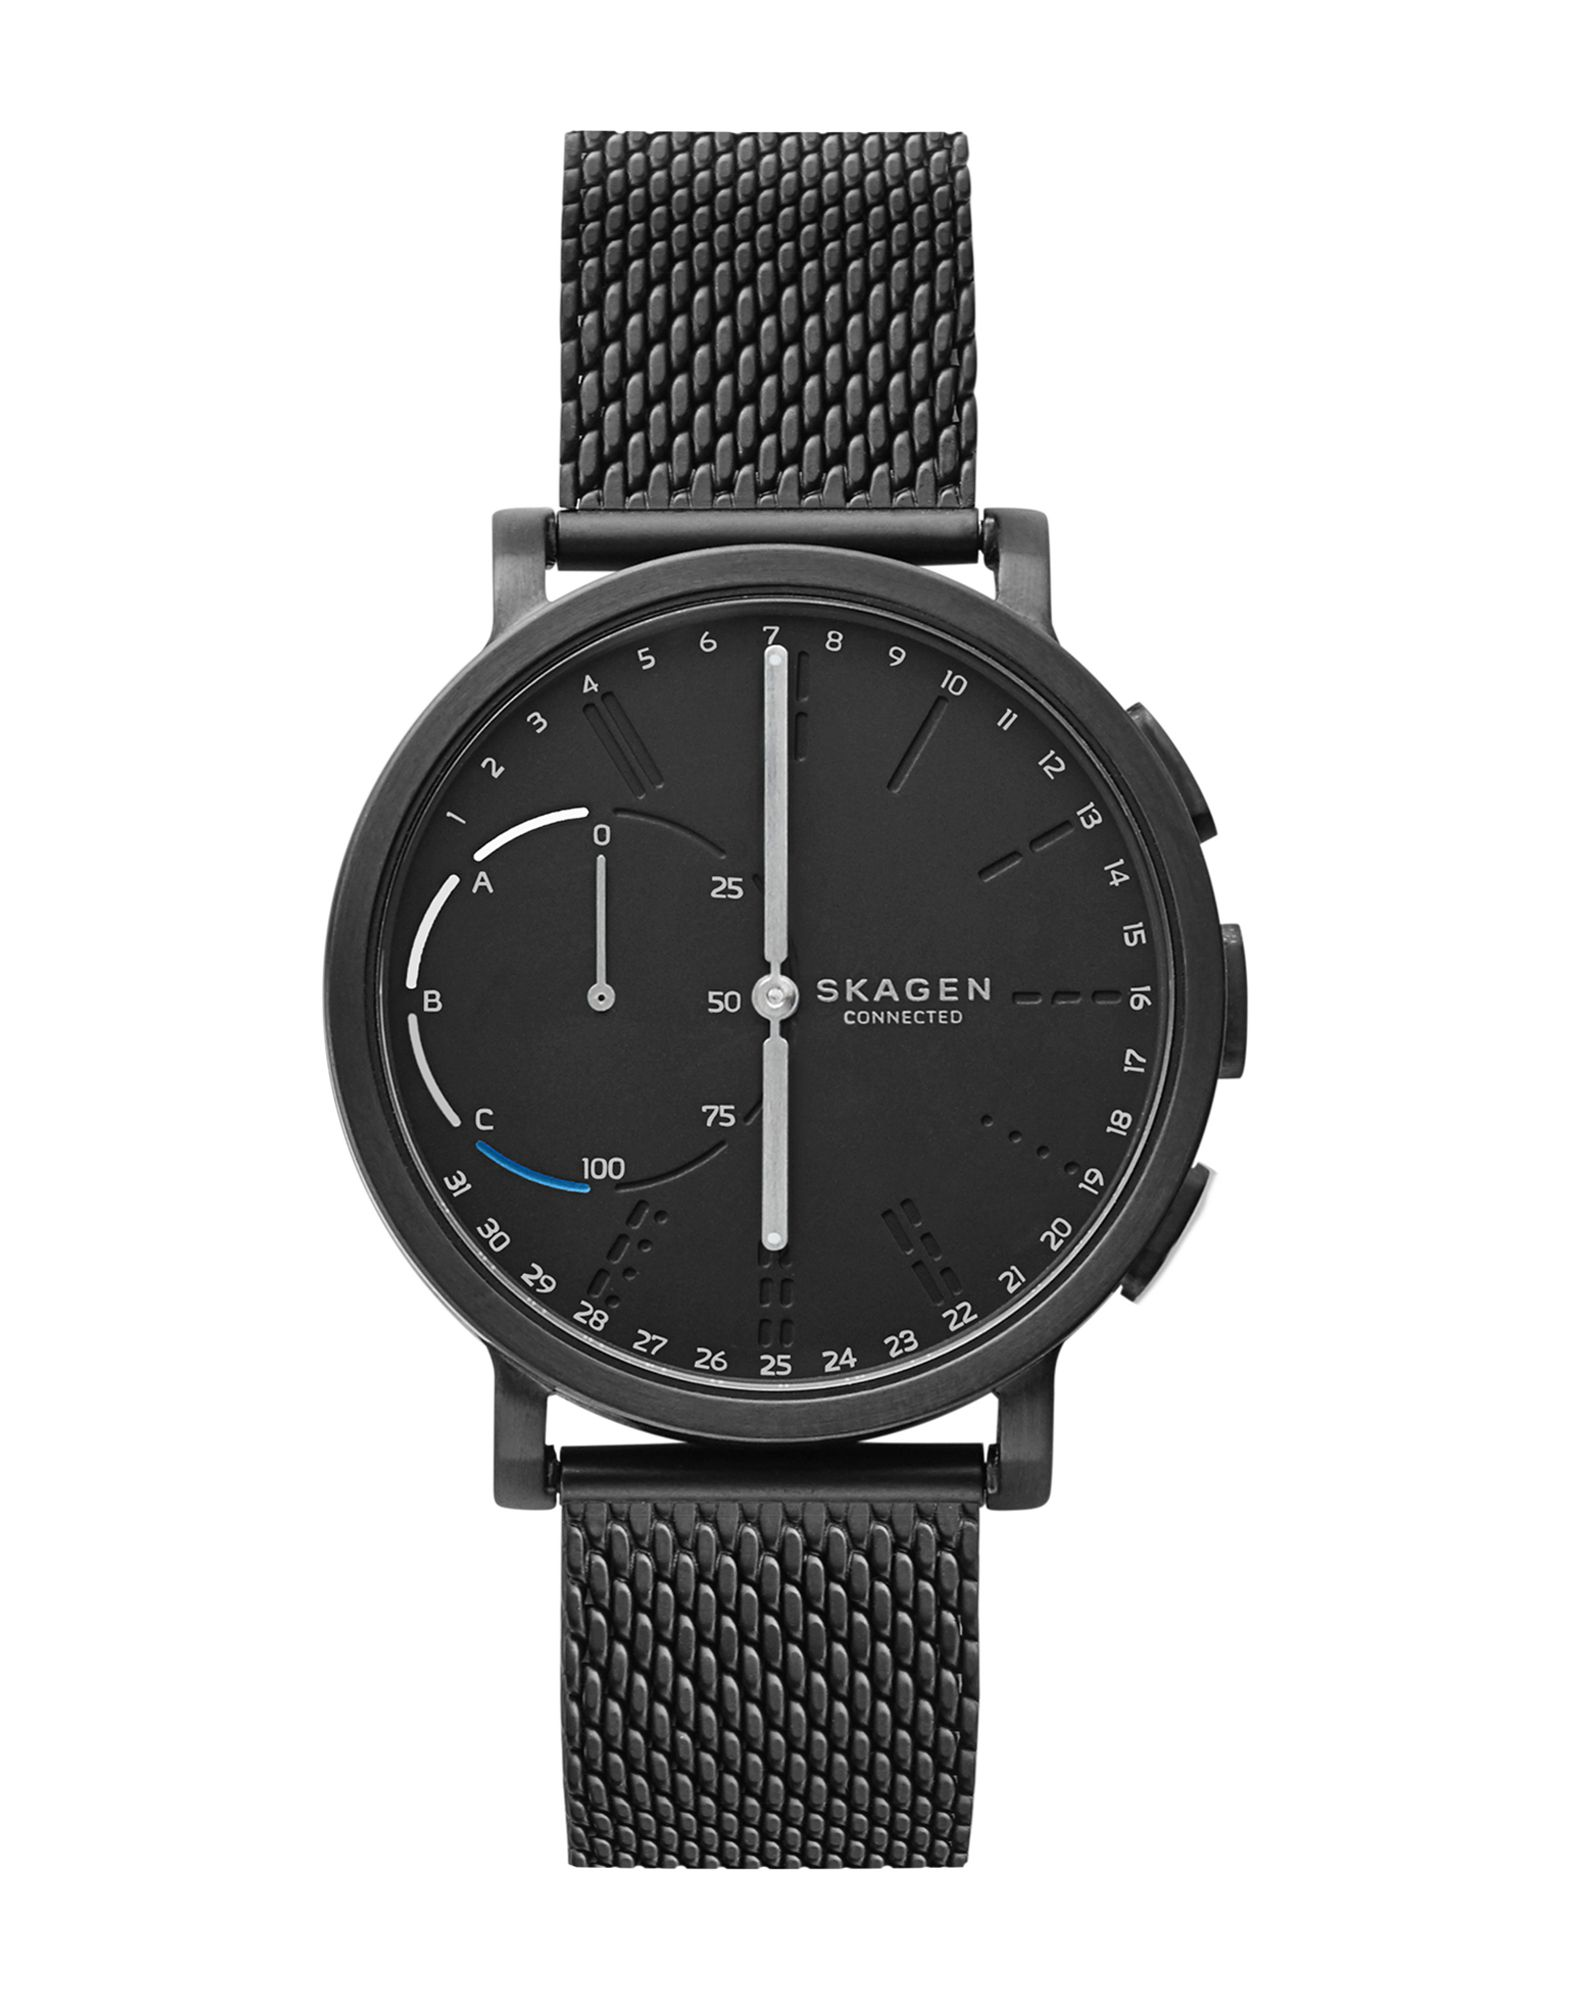 skagen comments r hagen connected smart watches watch hybrid